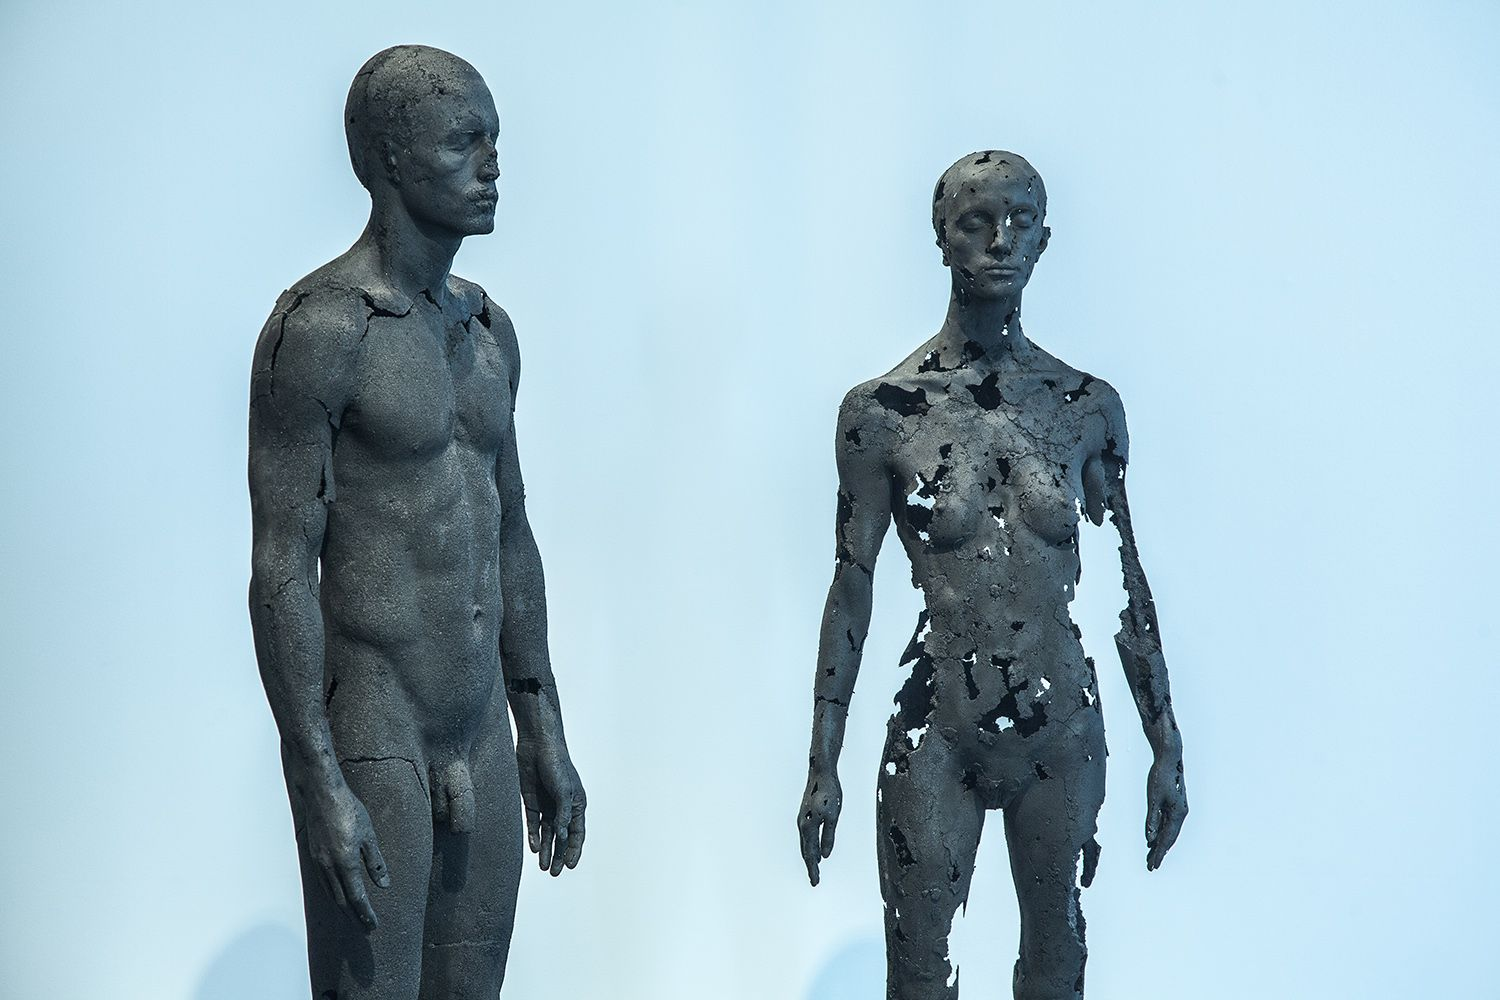 The Presence of Absence - Female (III),Tom Price,Sculpture, detail 1